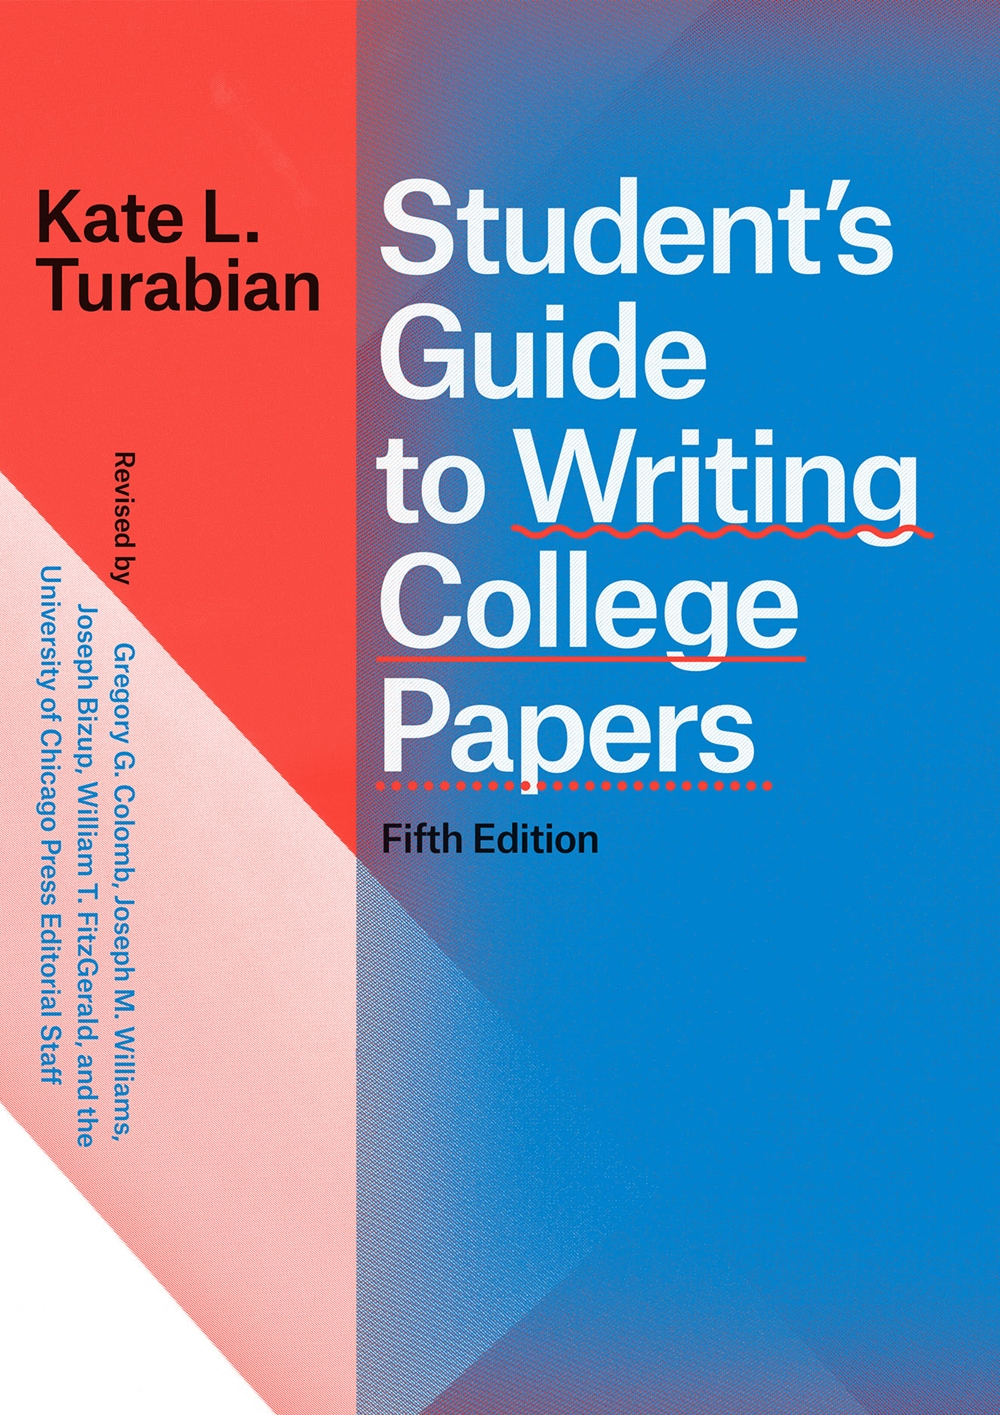 English Scholar Stewards New Edition of Preeminent Student Guide for Writing College Papers